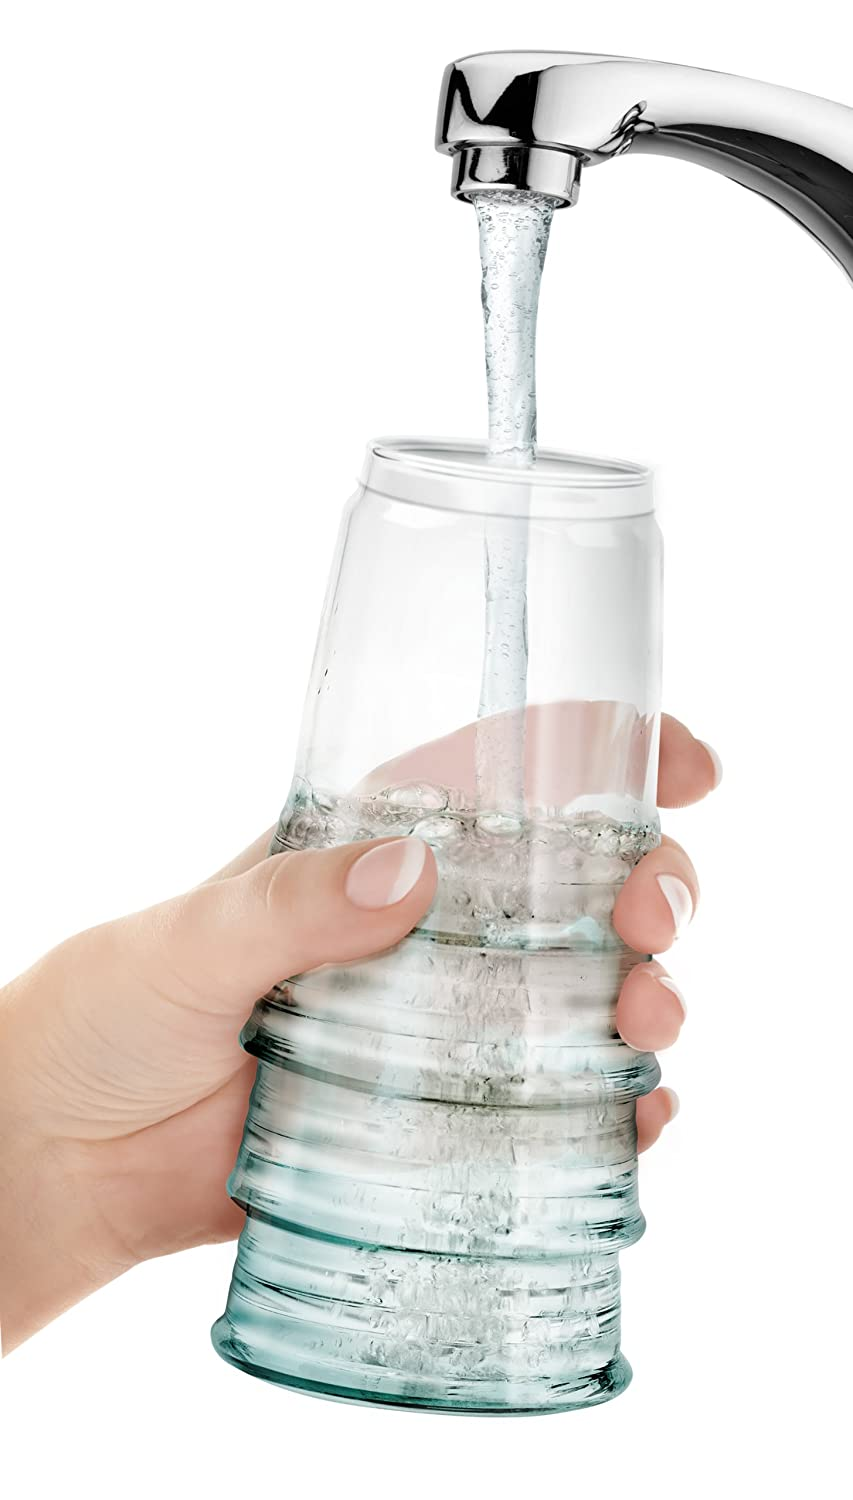 Fred & Friends H2eau Water Carafe And Glass: Amazon: Kitchen & Home